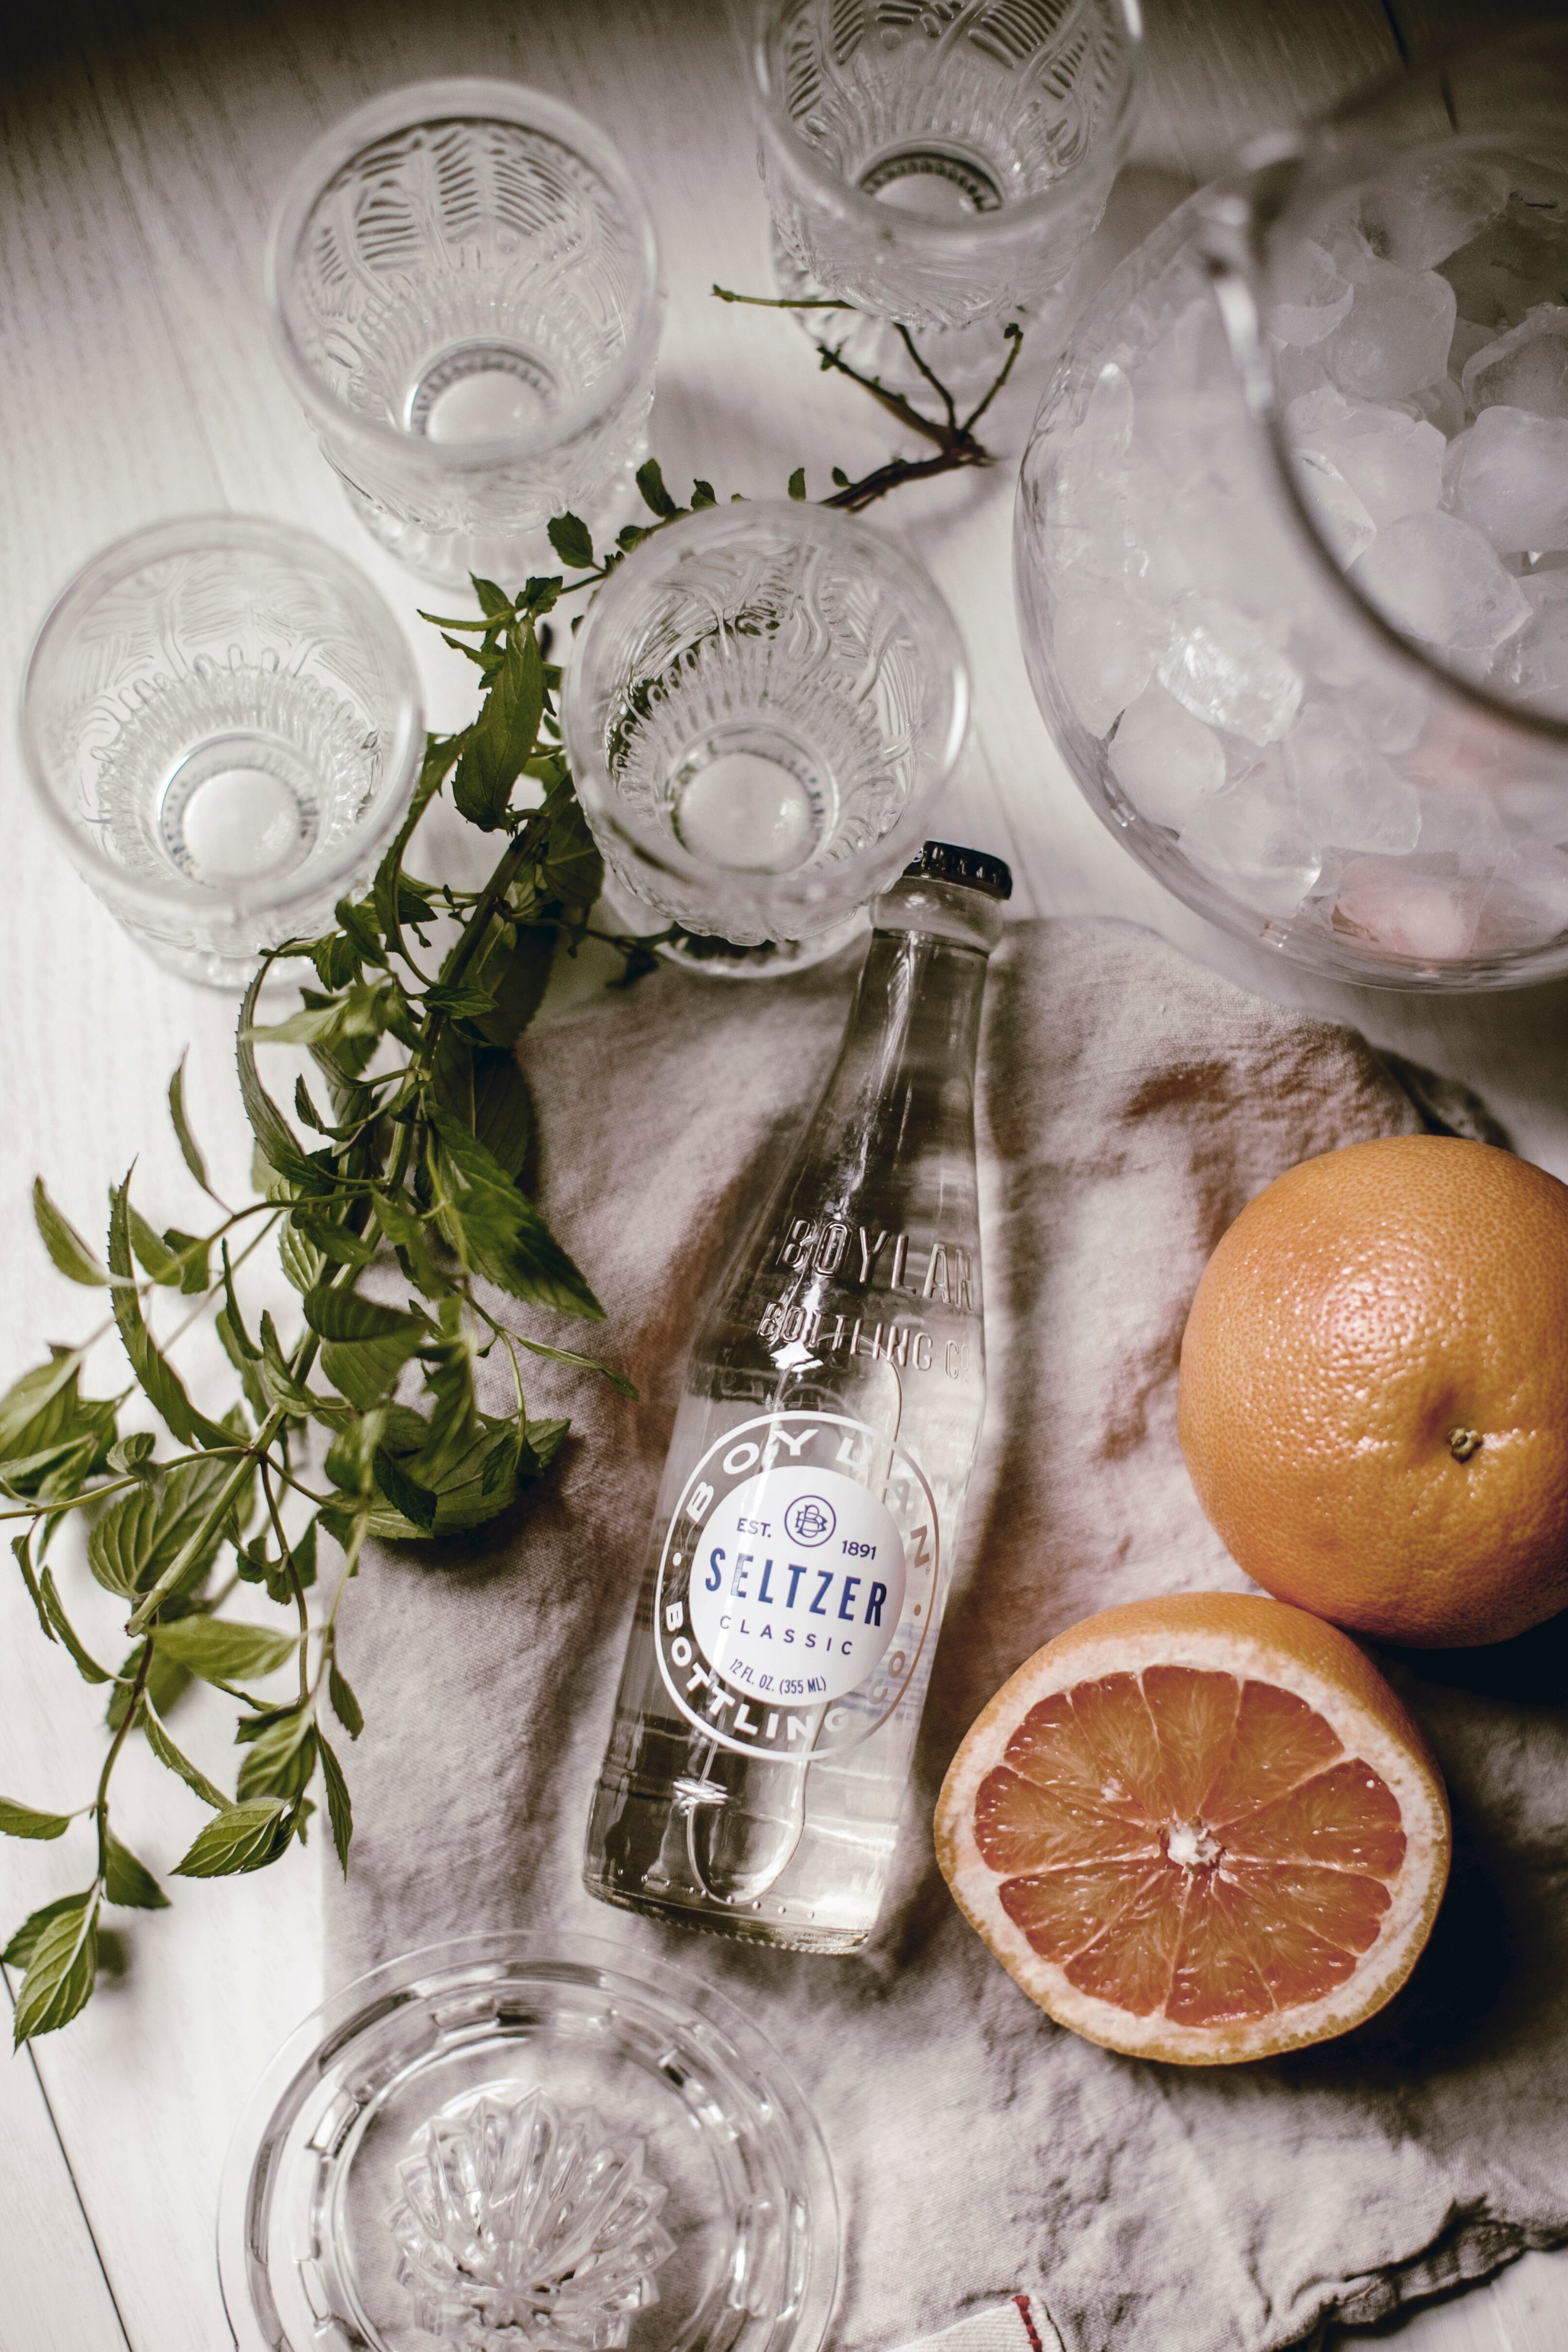 Grapefruit and Mint Spritzer by heirloomed